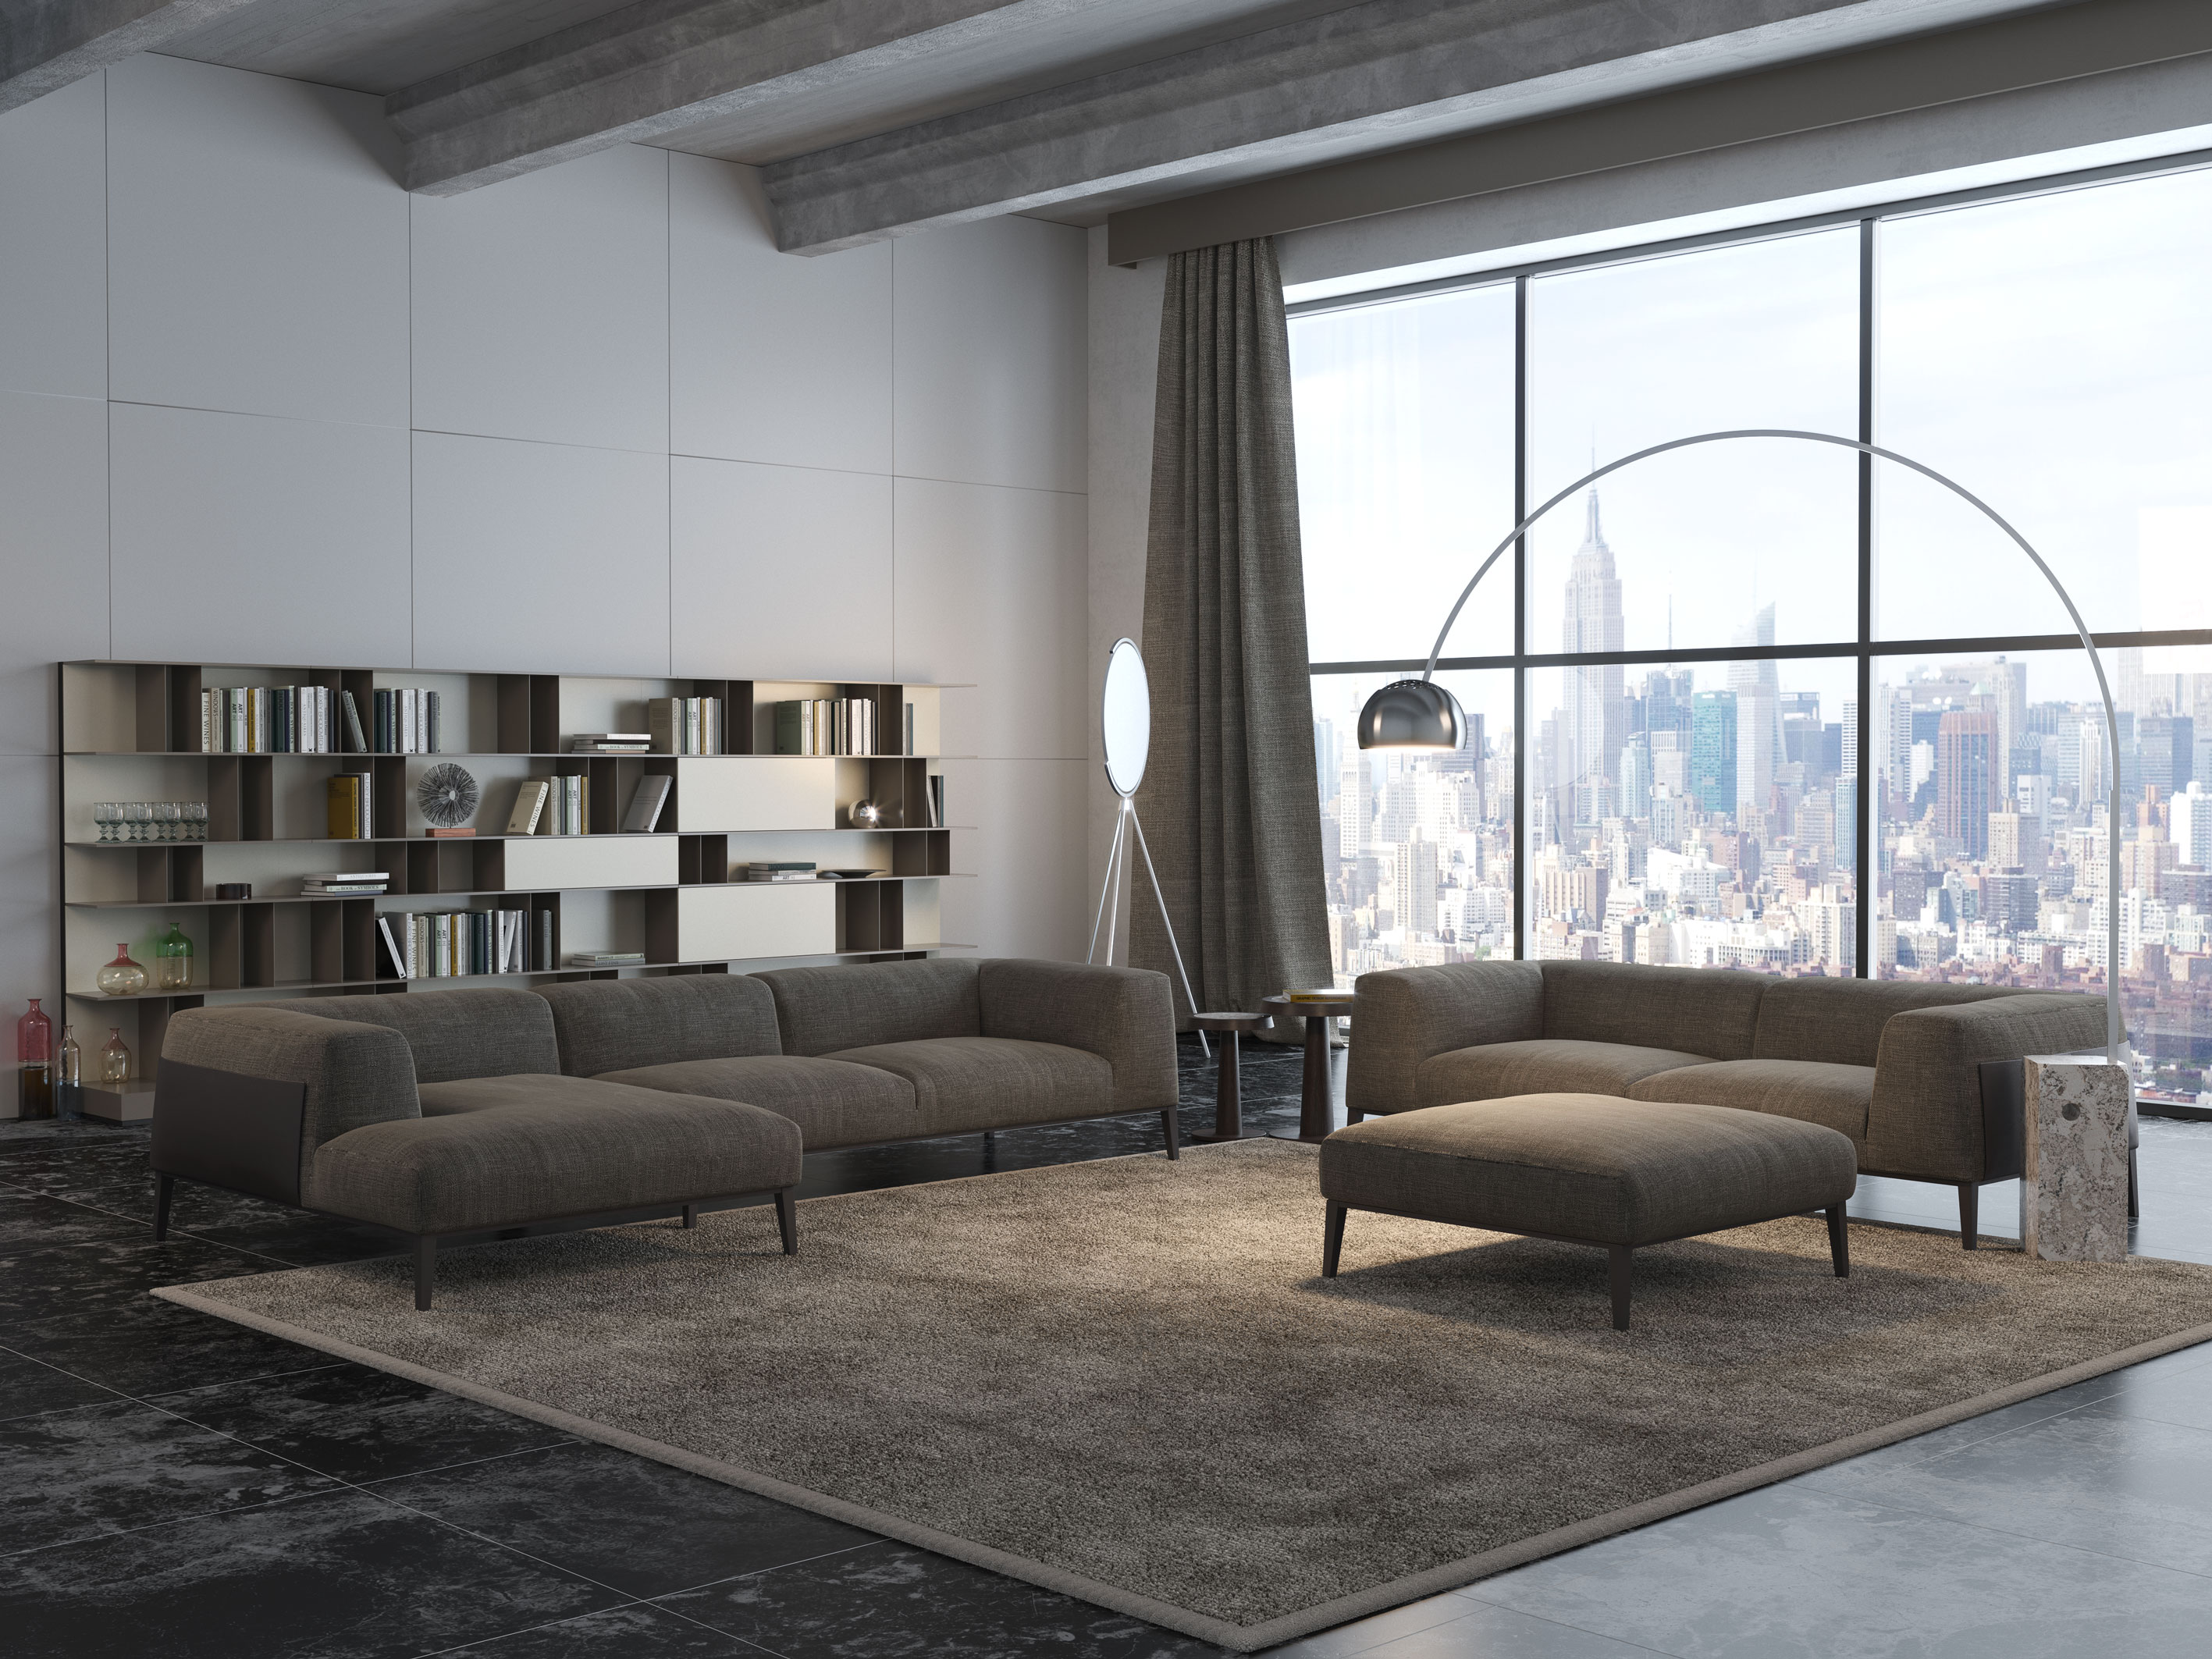 Poliform interior final architettura e interior design for Living room cinema 4d